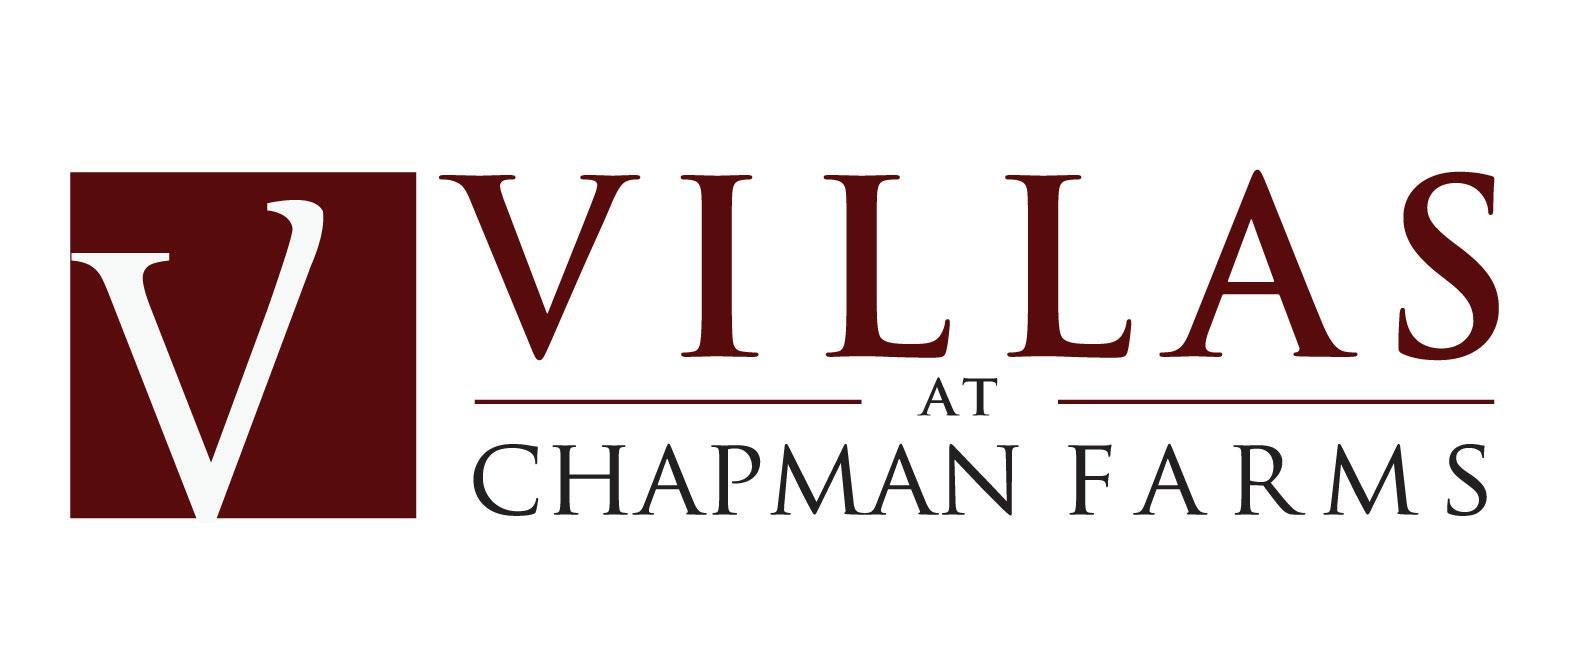 Villas-at-CF-logo.jpg